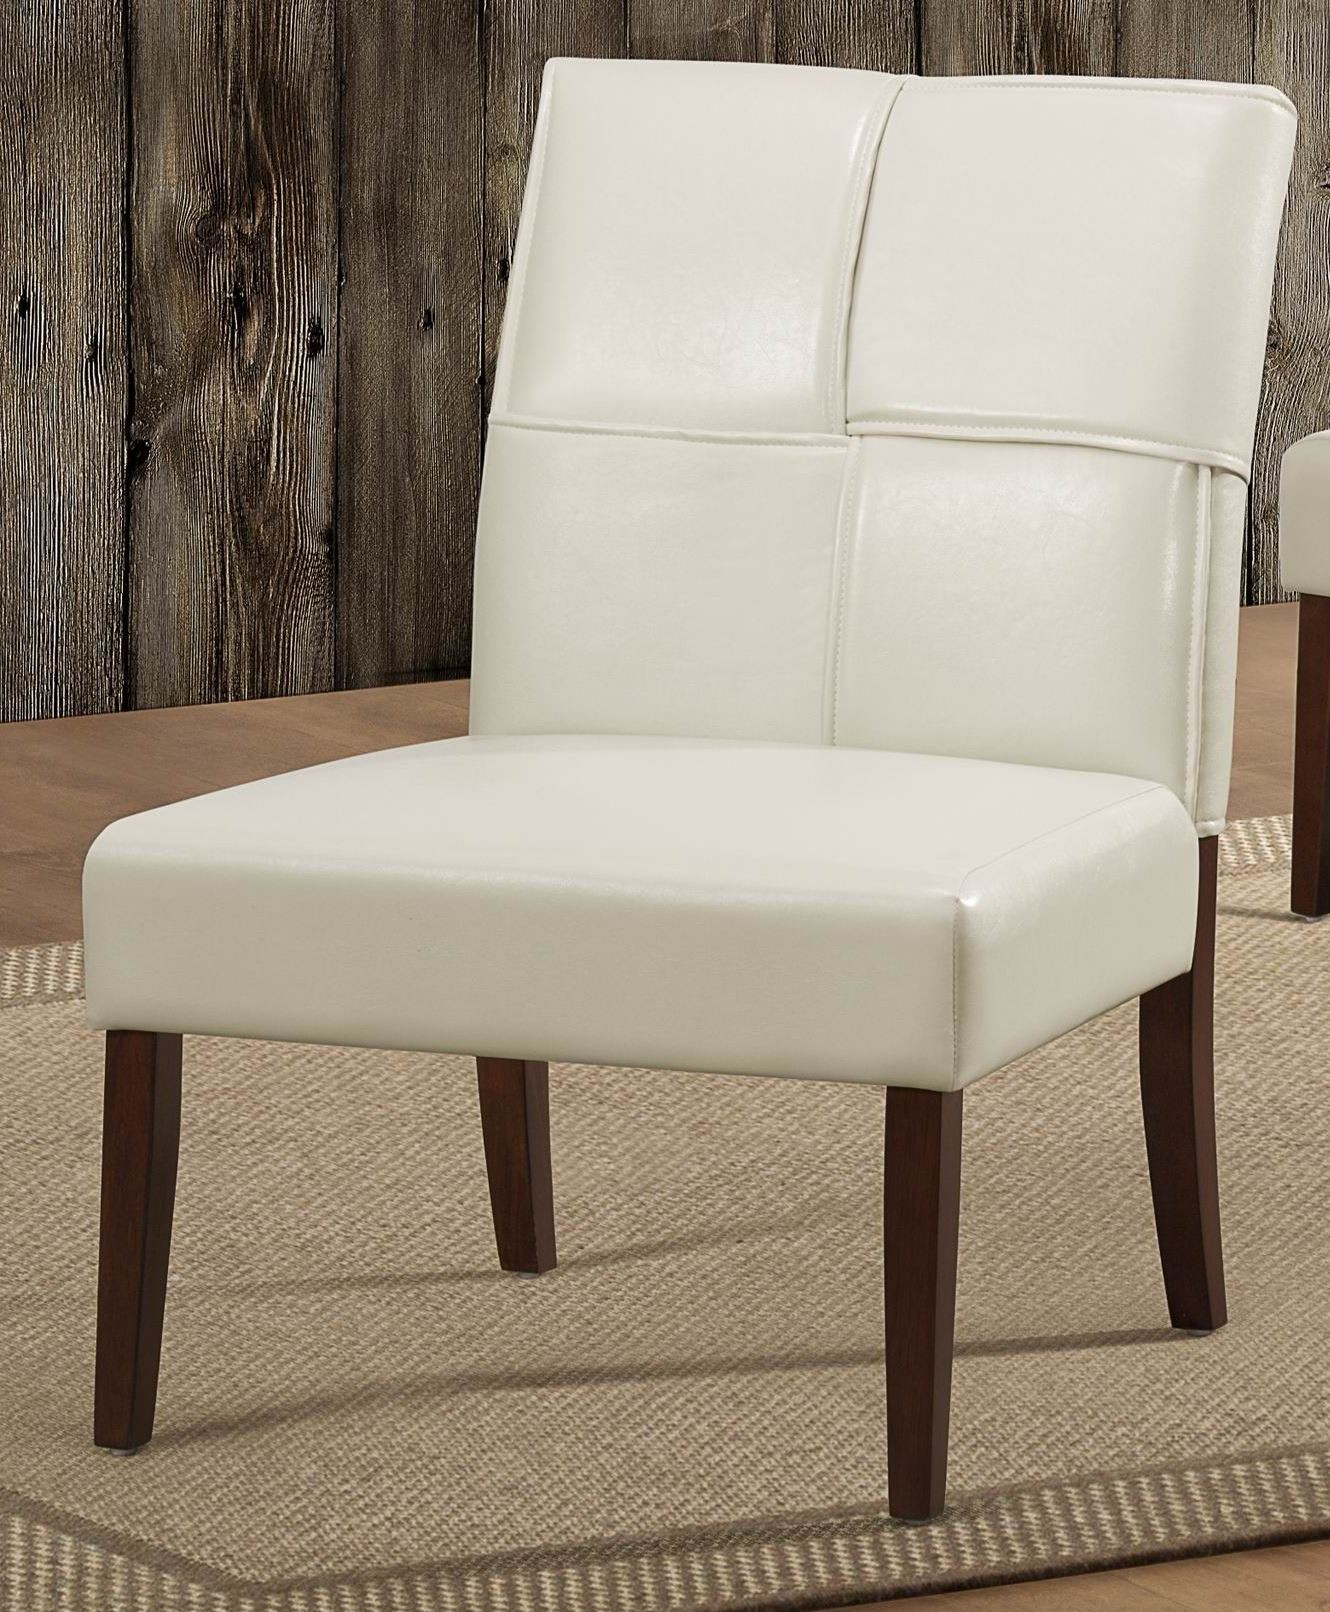 Cream Accent Chair Oriana Cream Accent Chair From Homelegance 1215crs